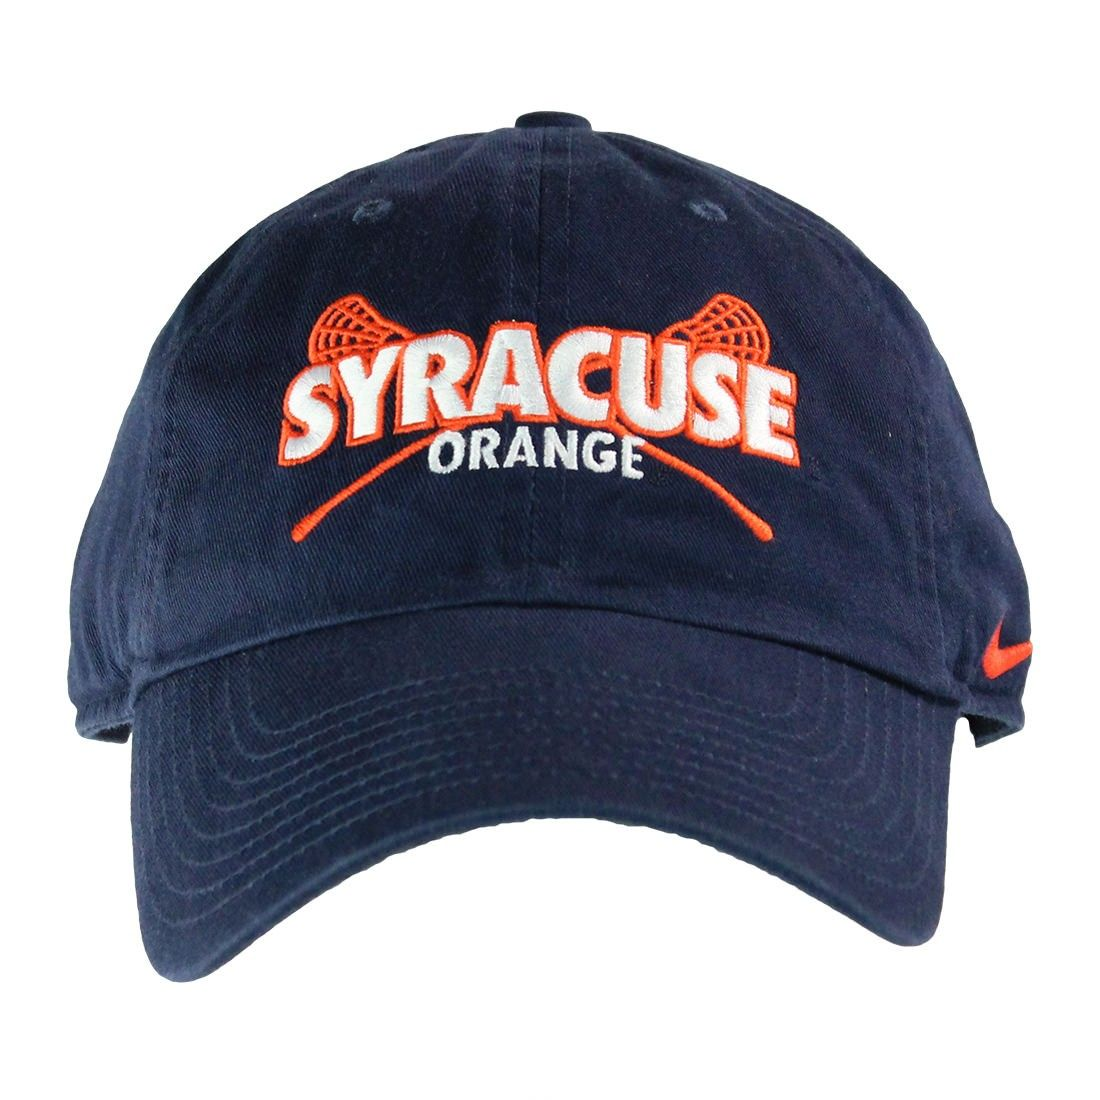 420650247d1 Syracuse Nike Campus Hat Syracuse Orange Design with Lacrosse Sticks on  Front Of Hat Orange Nike Check on Left Side of the Hat Size- Adjustable  Strap on ...